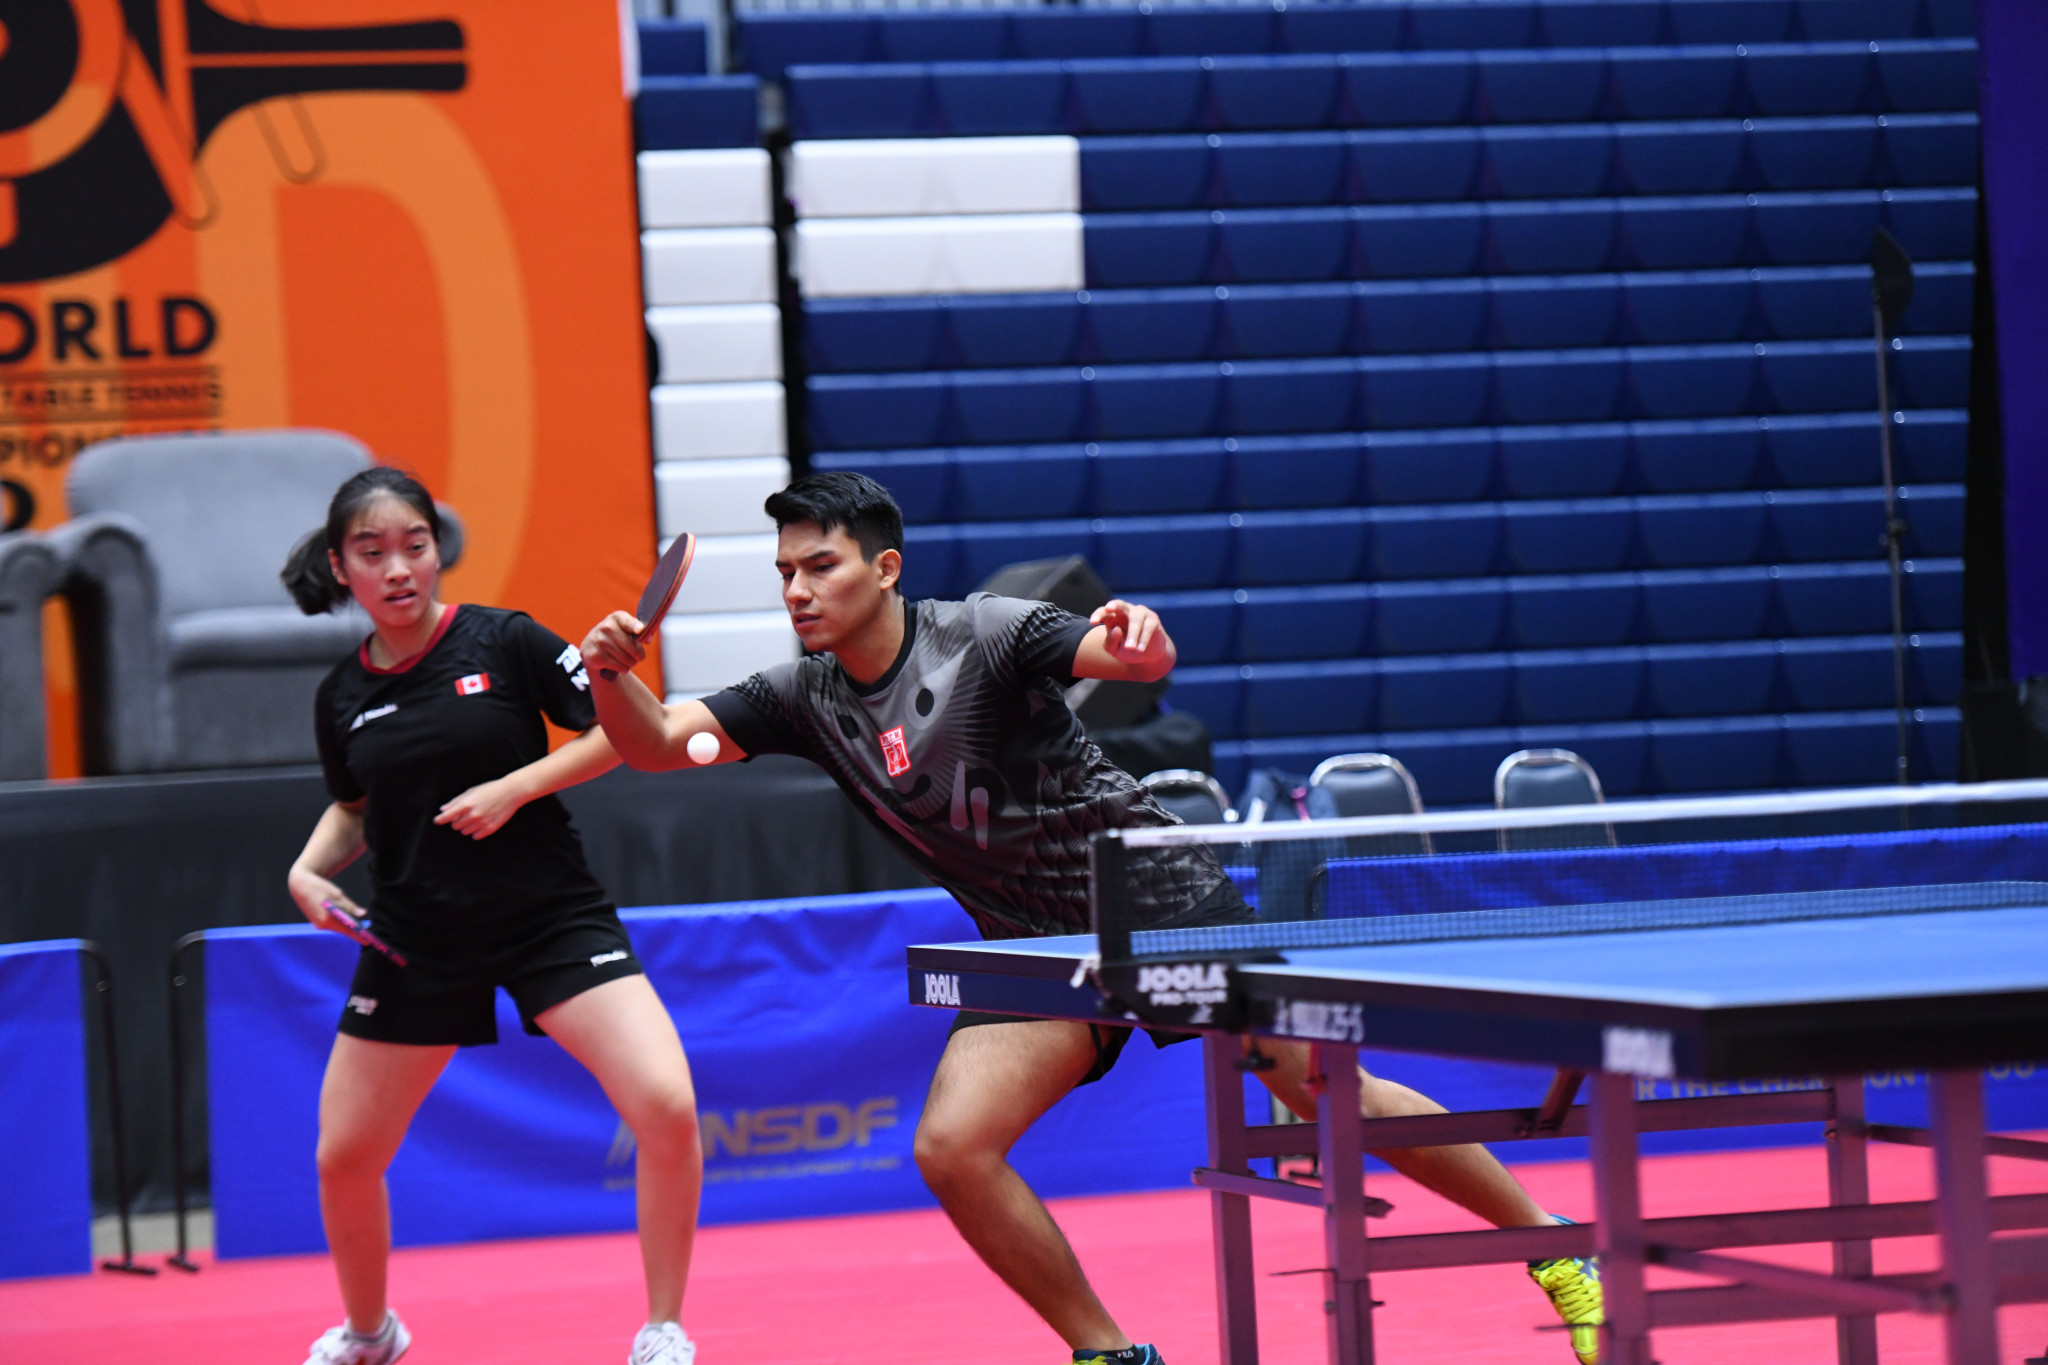 Mixed fortunes for group stage favourites at ITTF World Junior Championships